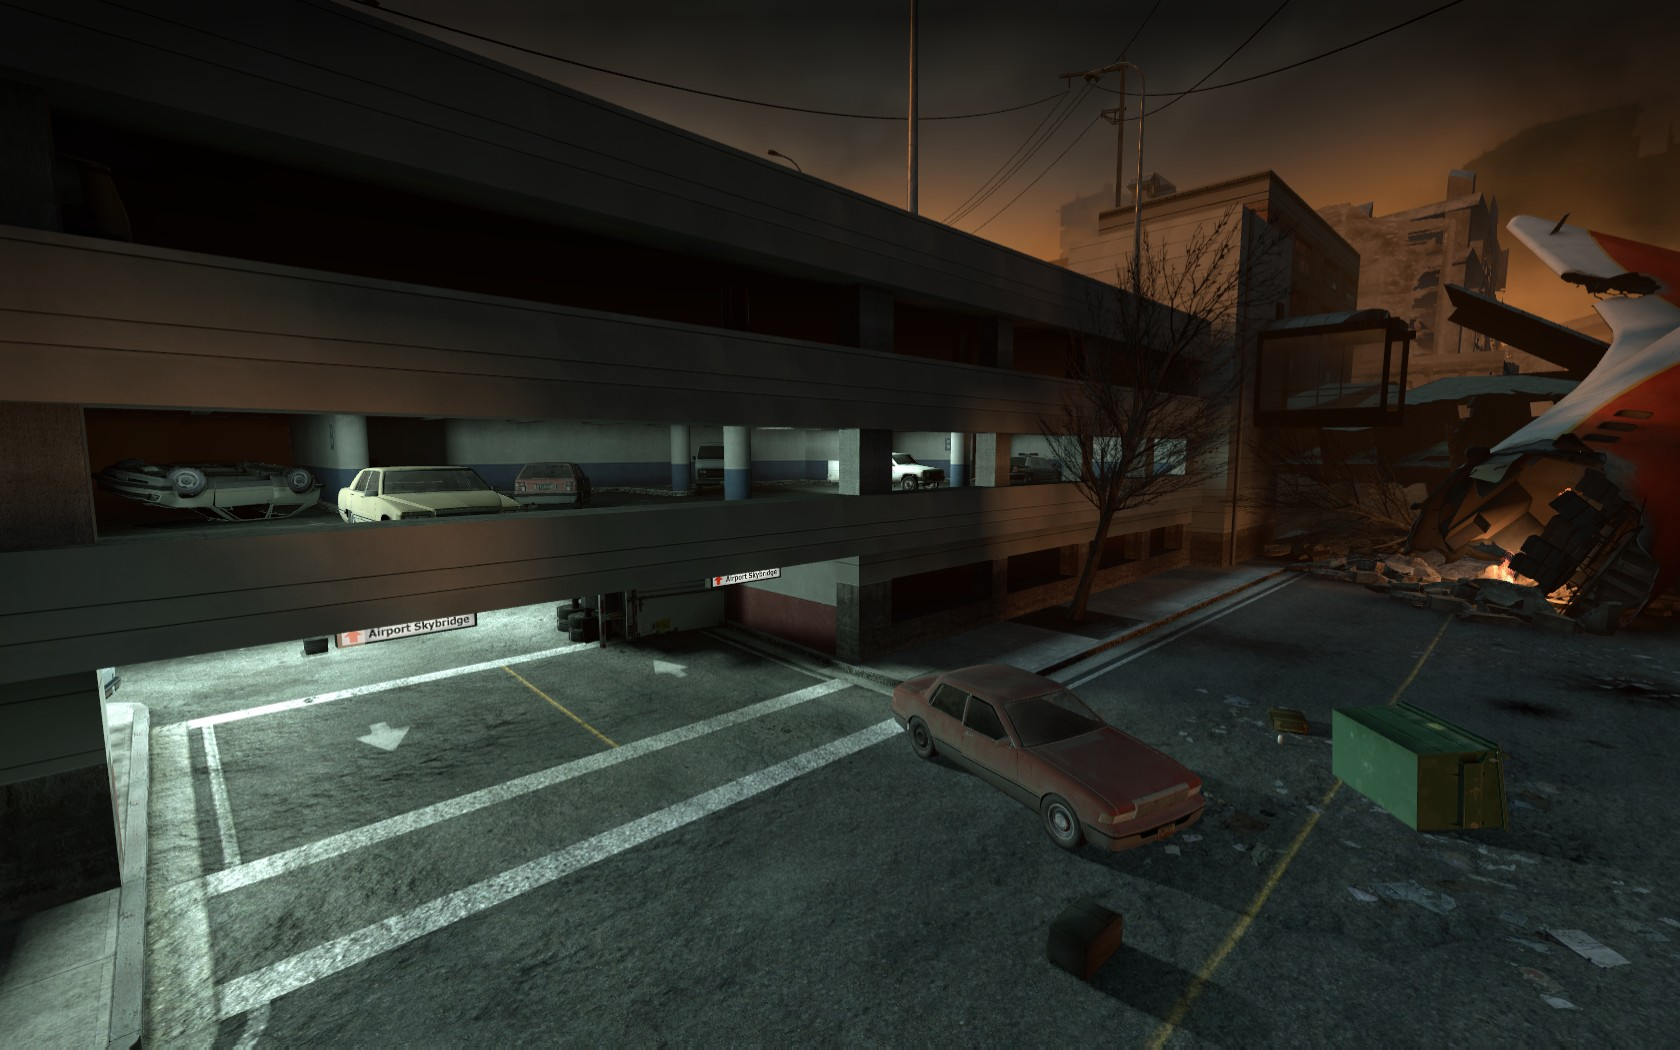 L4d airport03 garage0035.png